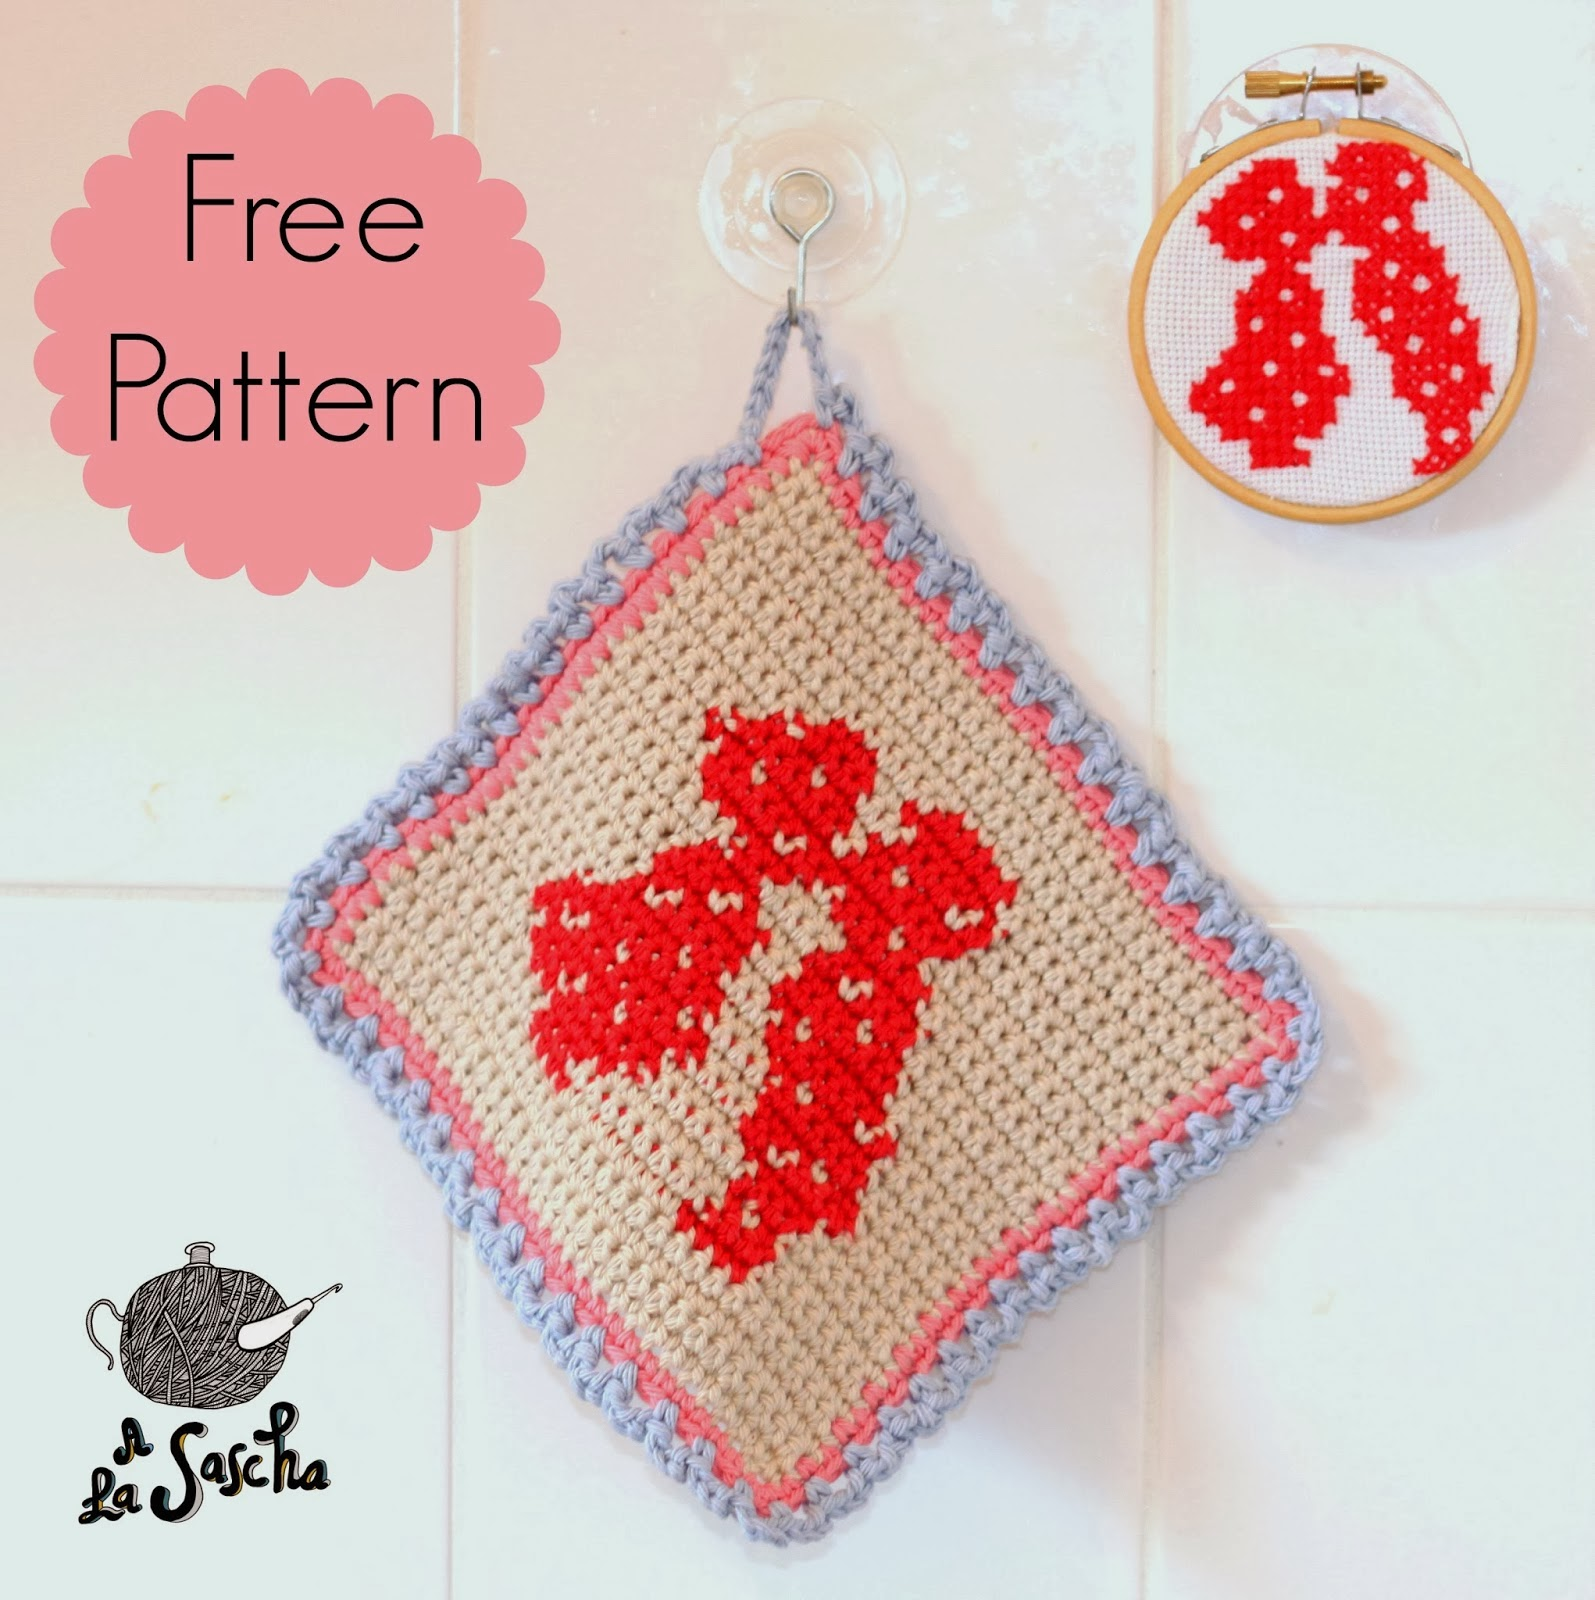 http://sascha-lovetoknit.blogspot.nl/2014/02/the-kiss-free-pattern.html